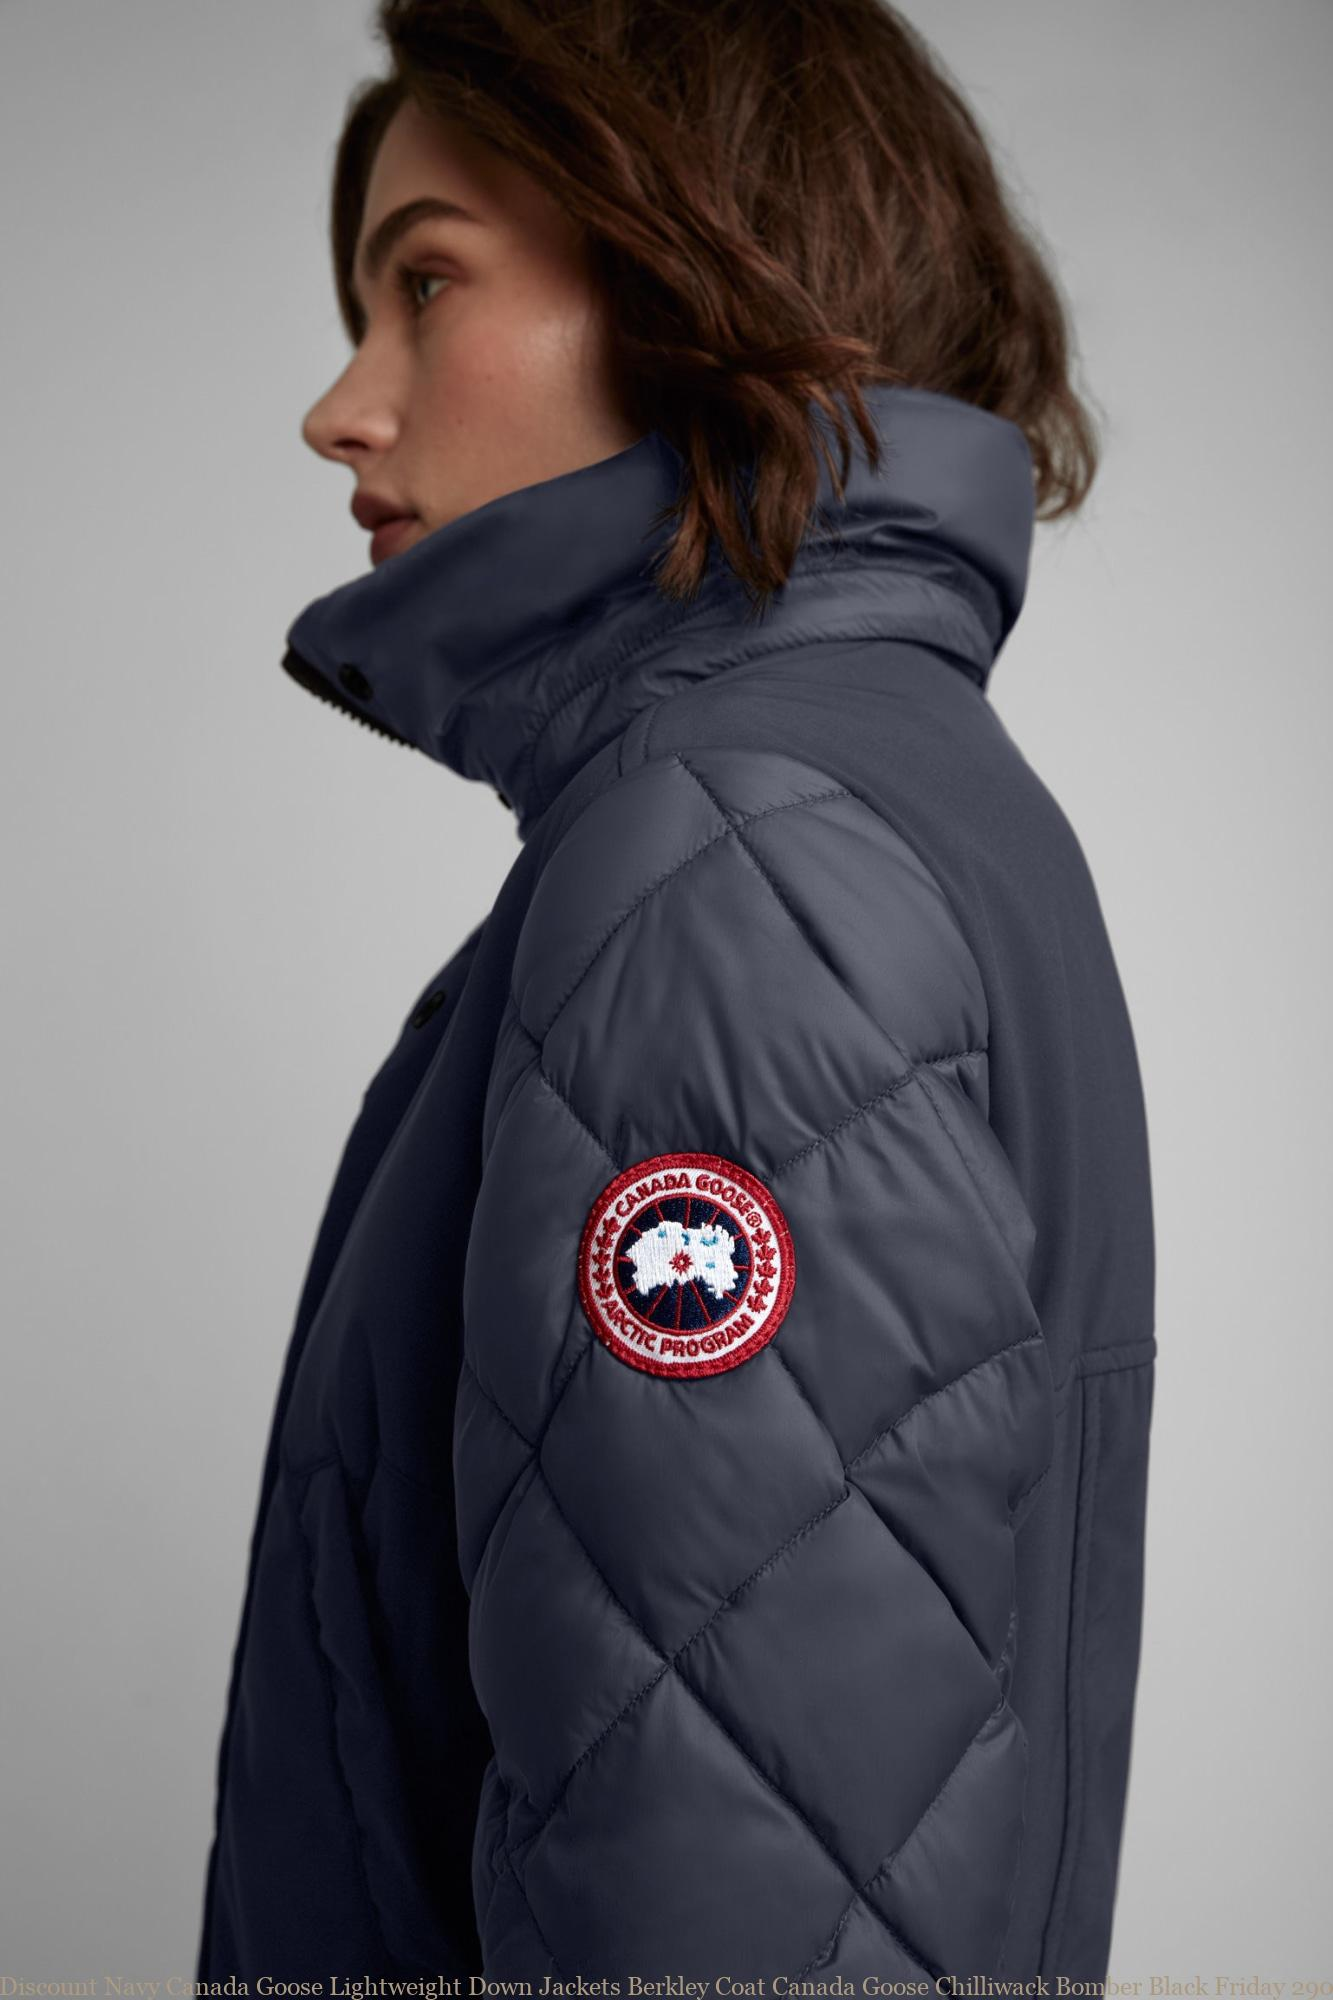 7e40e27810d Discount Navy Canada Goose Lightweight Down Jackets Berkley Coat Canada  Goose Chilliwack Bomber Black Friday 2905L